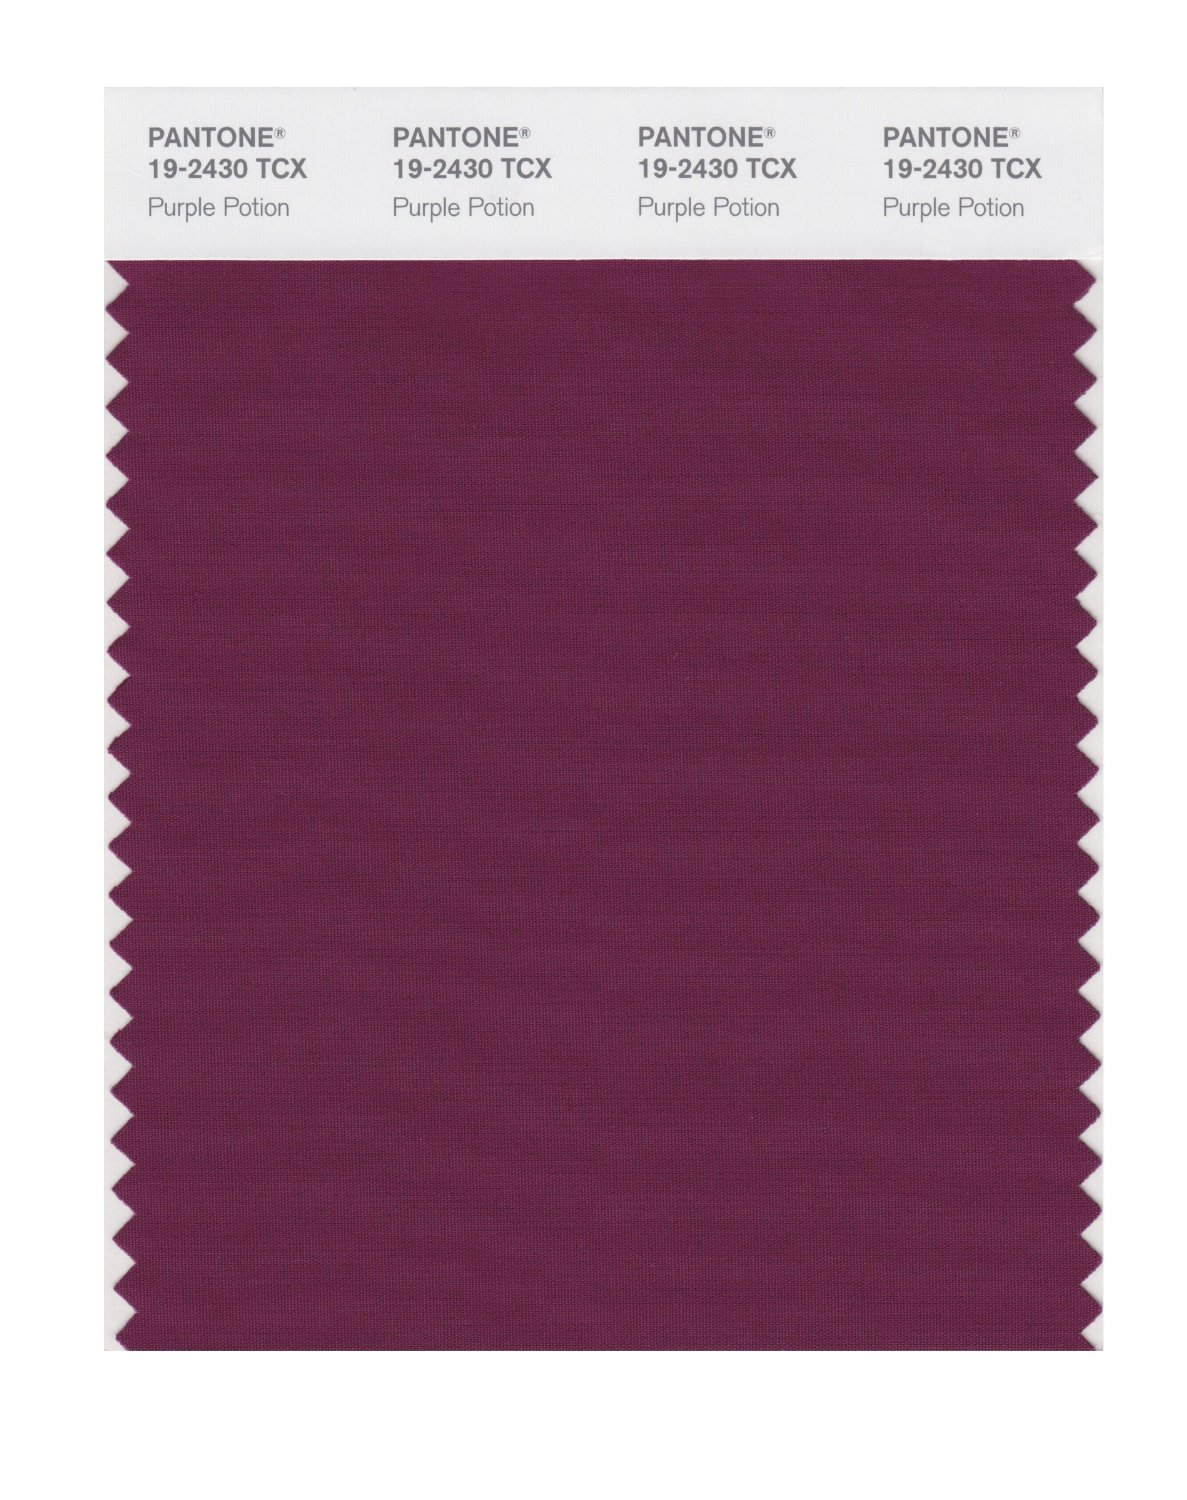 Pantone Smart Swatch 19-2430 Purple Potion